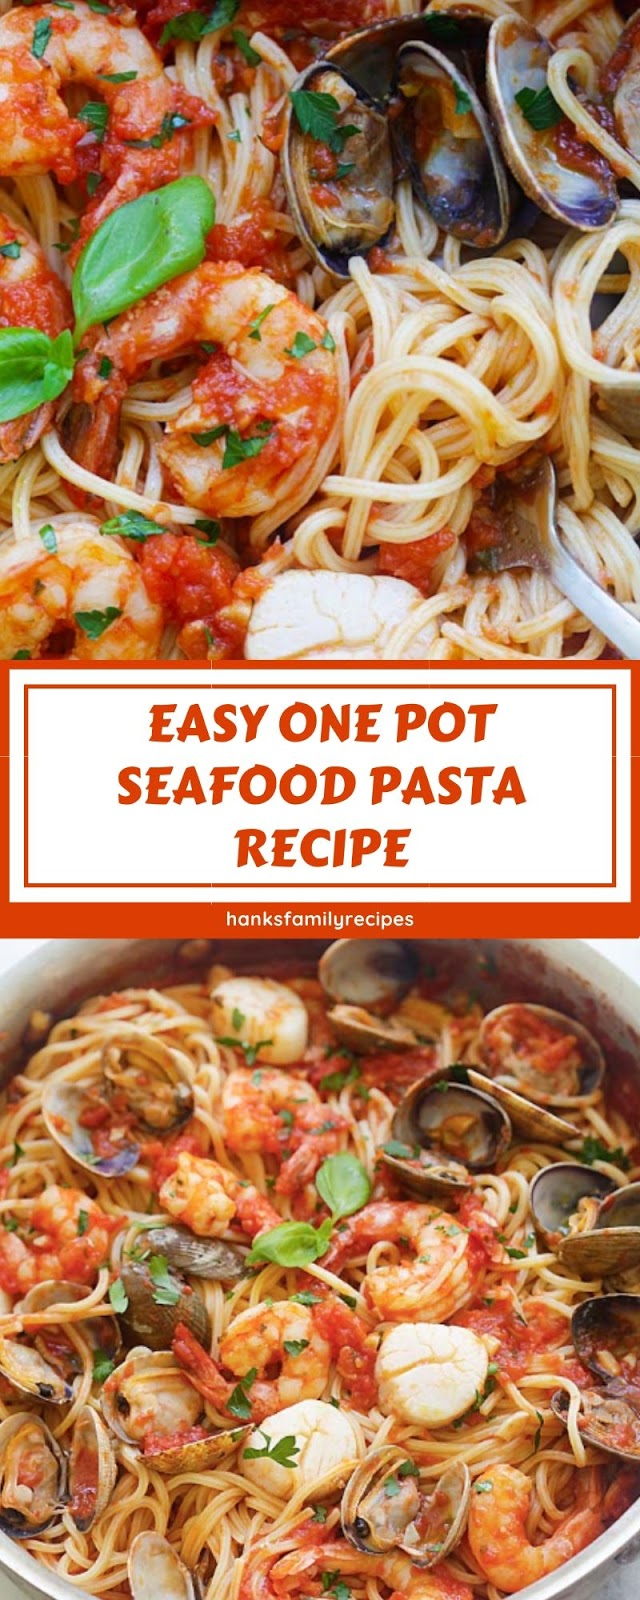 EASY ONE POT SEAFOOD PASTA RECIPE